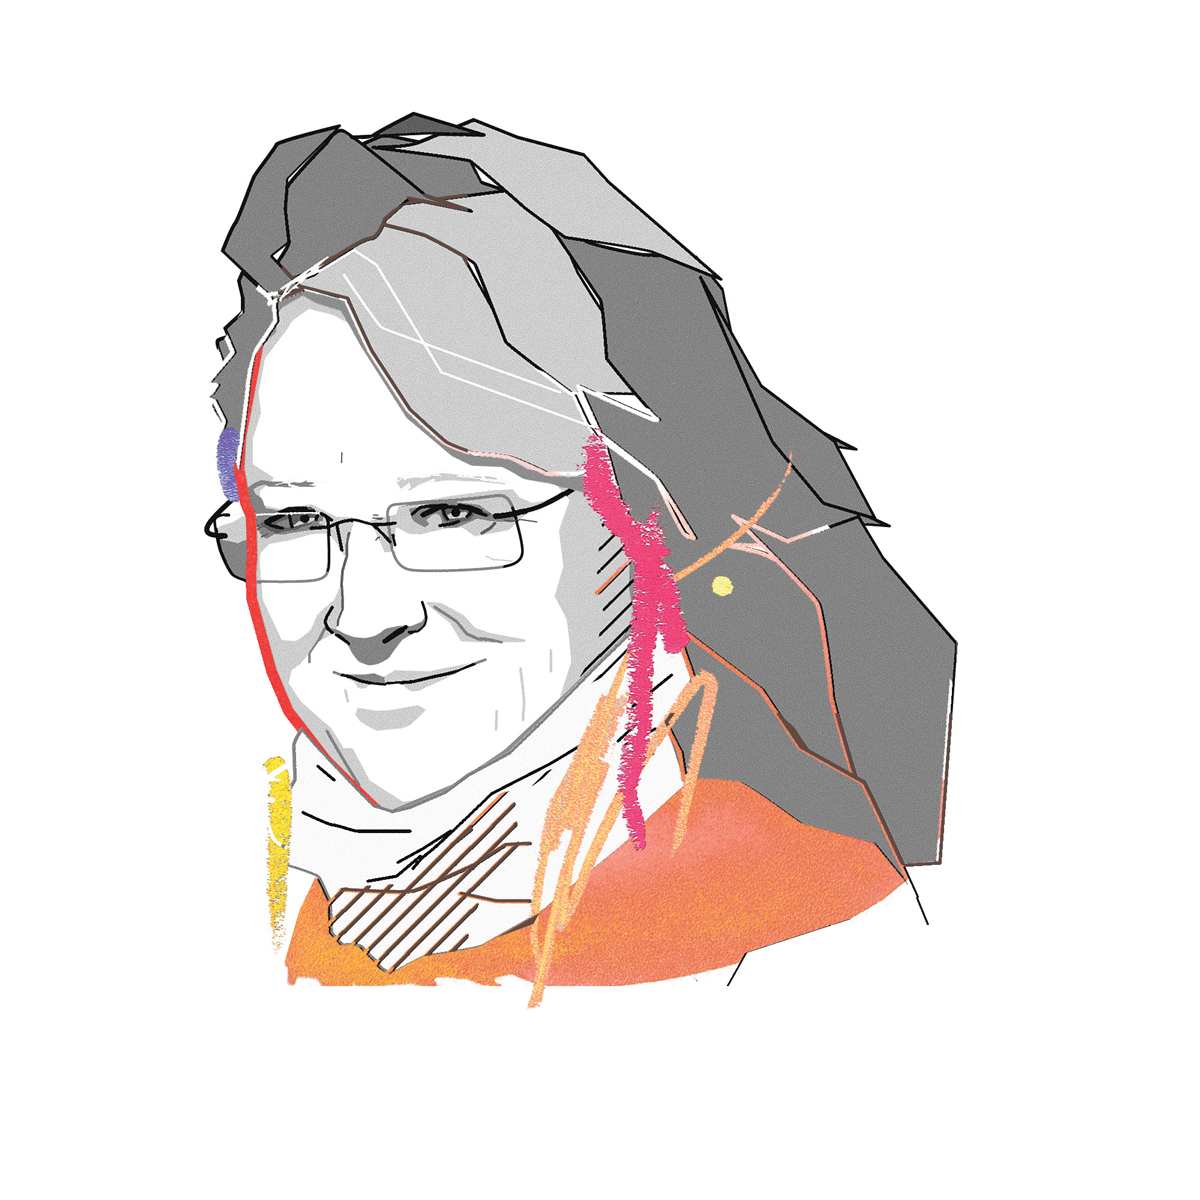 Illustration of Susan Krumdieck